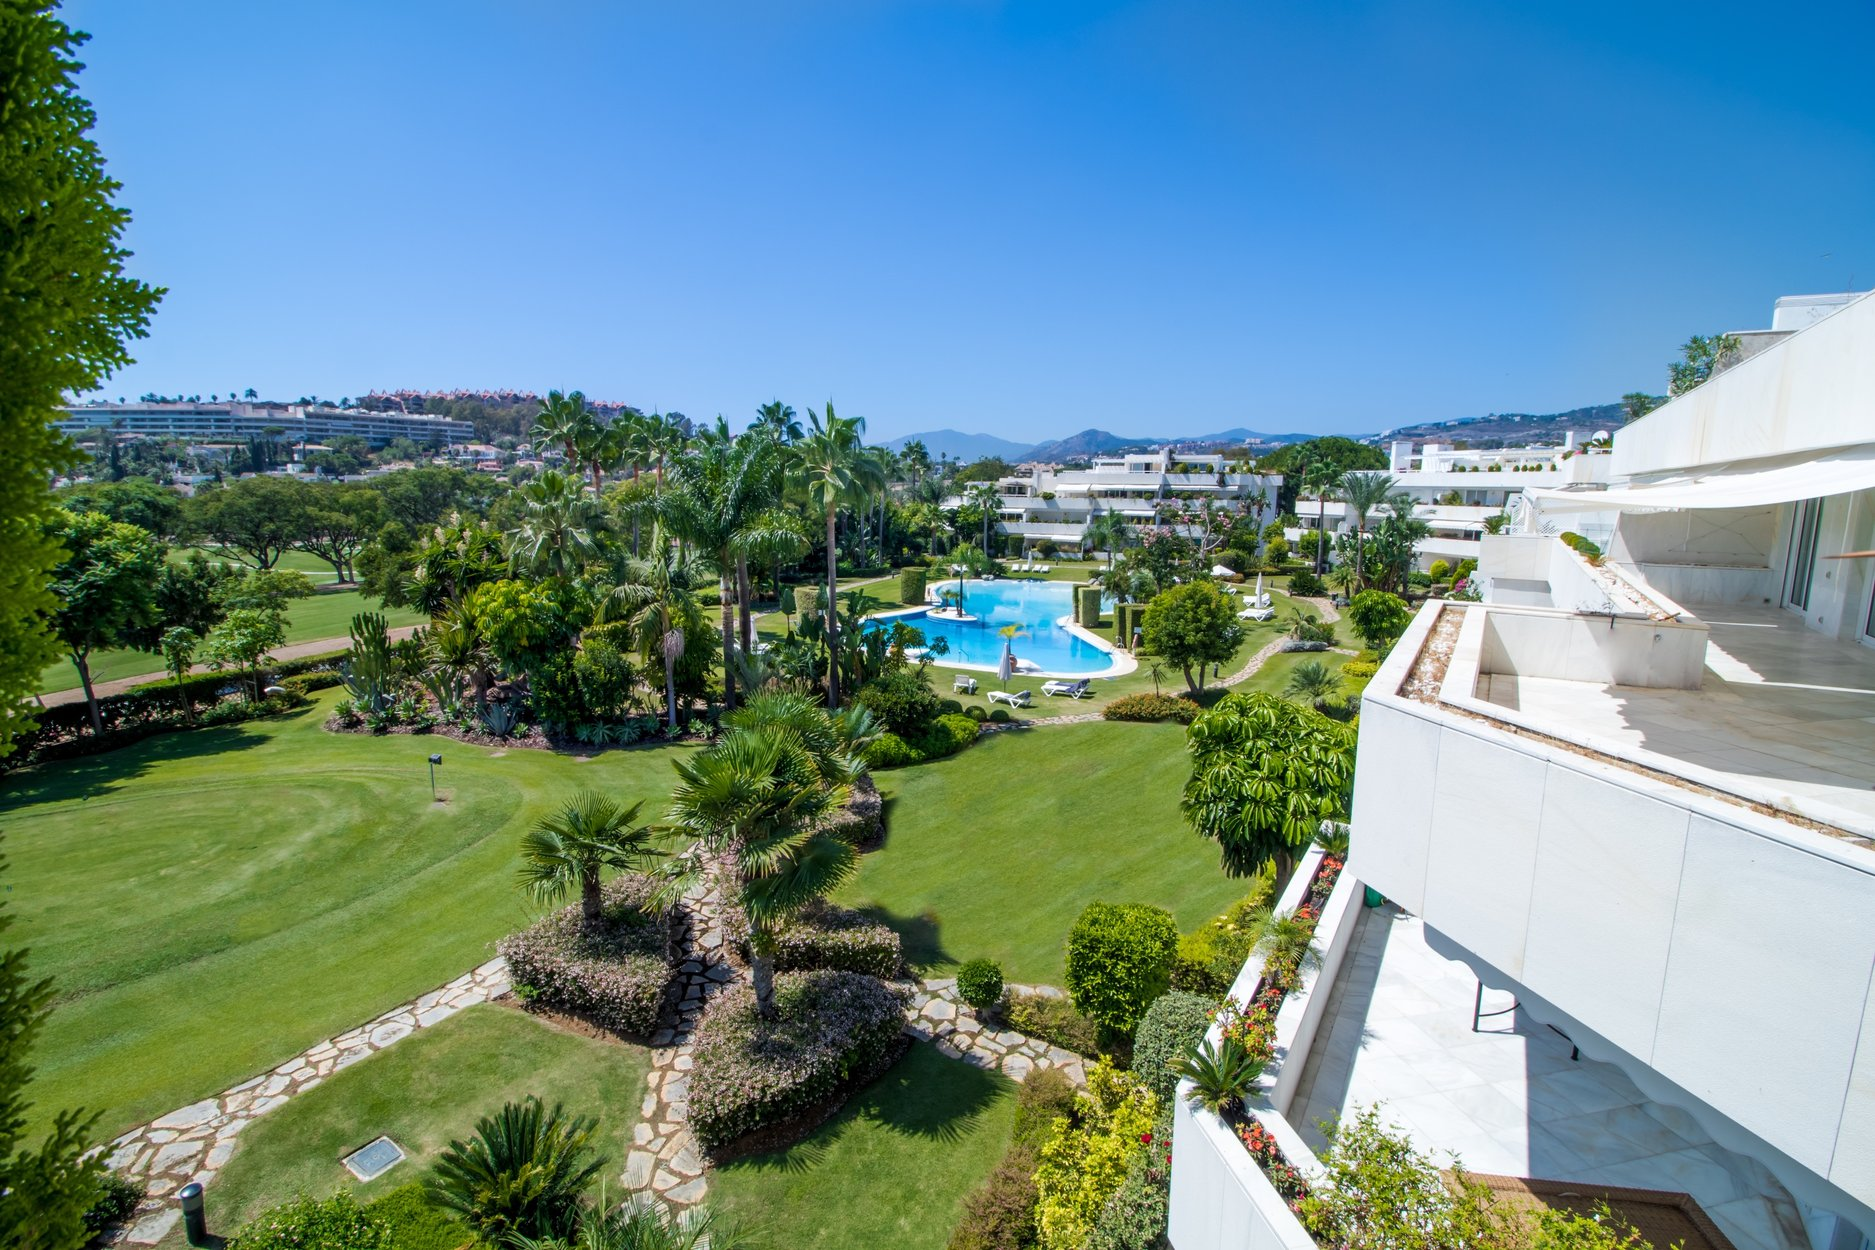 aaa4 bedroom Penthouse in Nueva Andalucia, Marbella | M256635